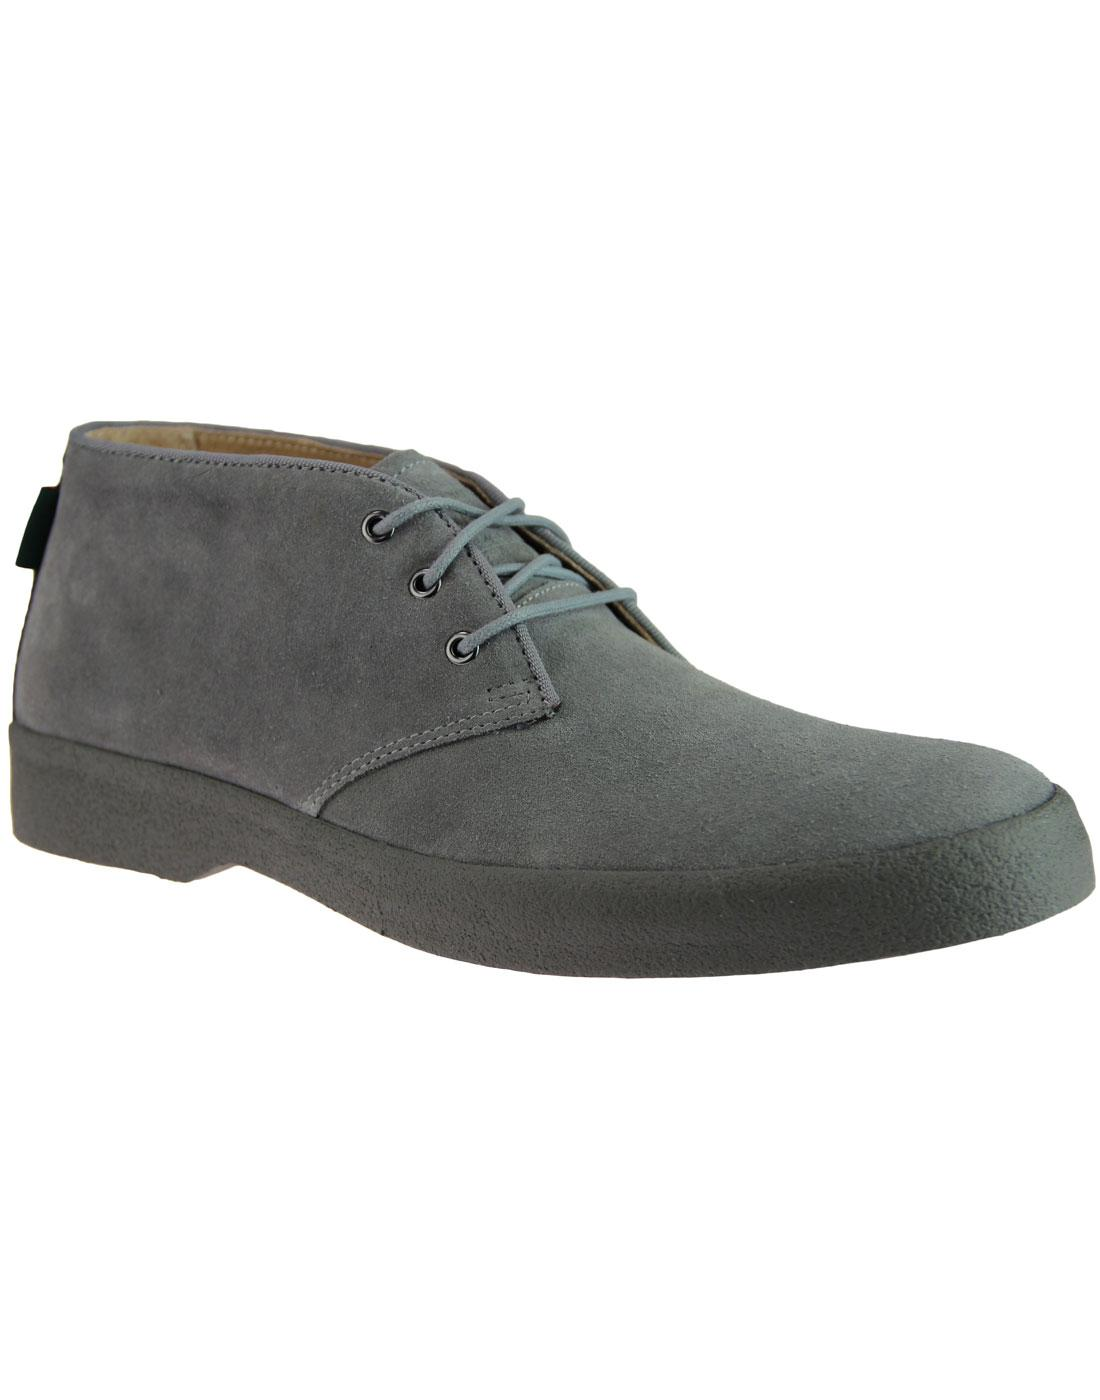 Scholar Stanford BASS WEEJUNS Mod Playboy Boots MG